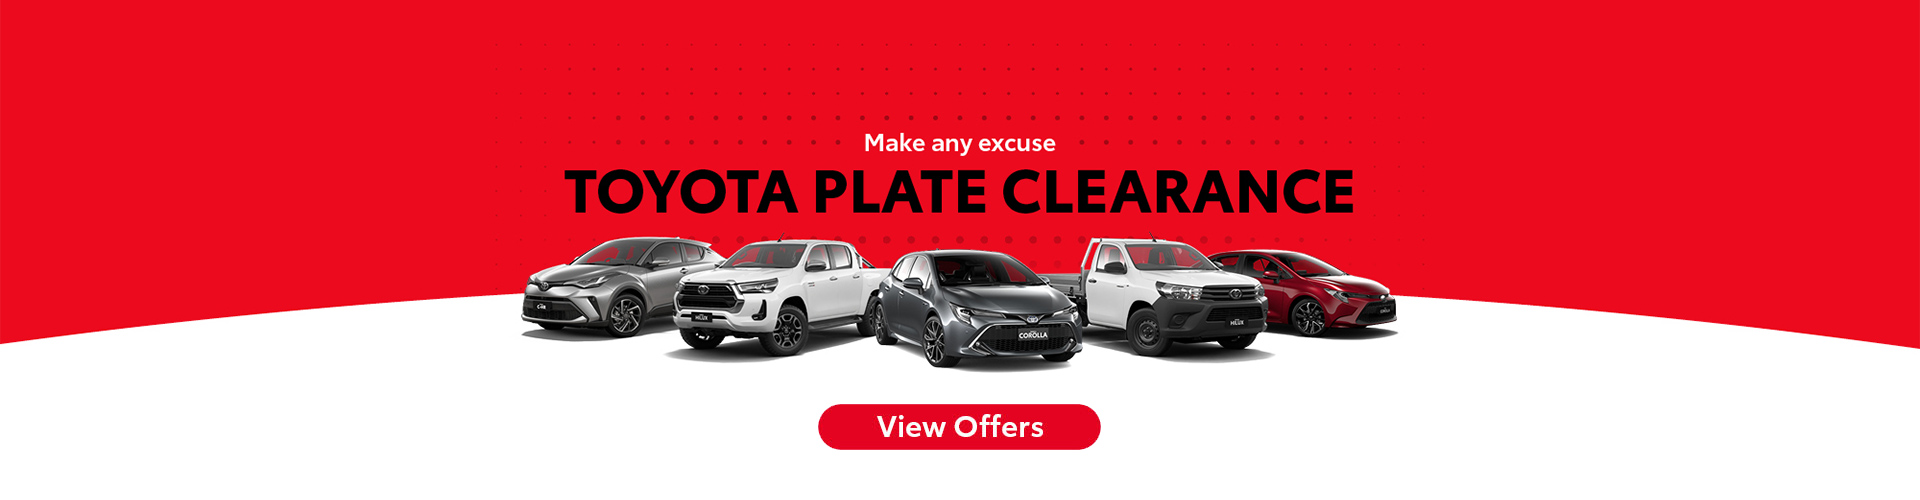 Toyota Plate Clearance